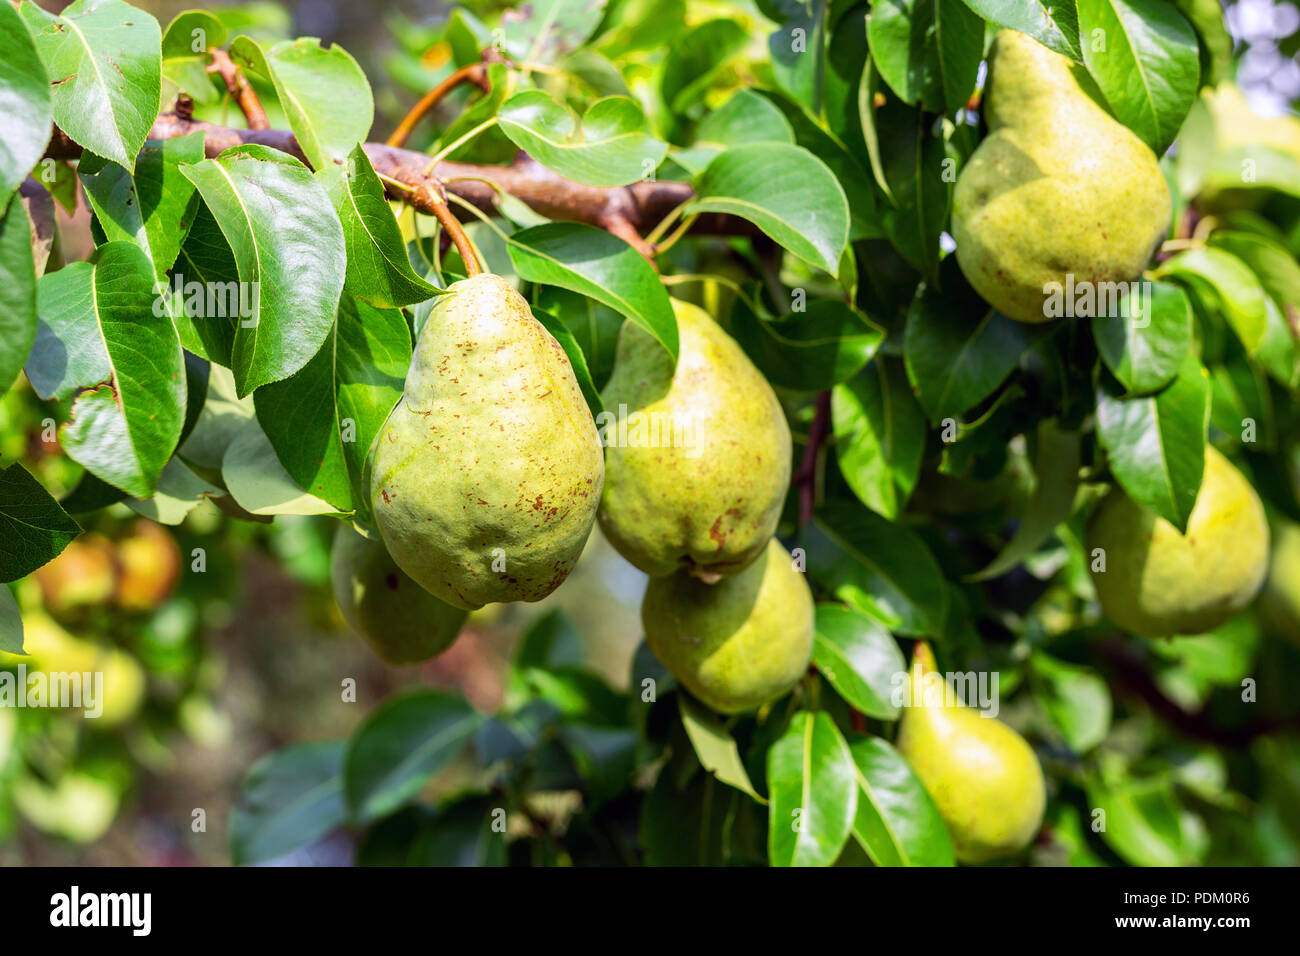 Many big ripe tasty juicy pears growing on tree in orchard. Healthy organic bio fruit natural background. Harvest season concept Stock Photo